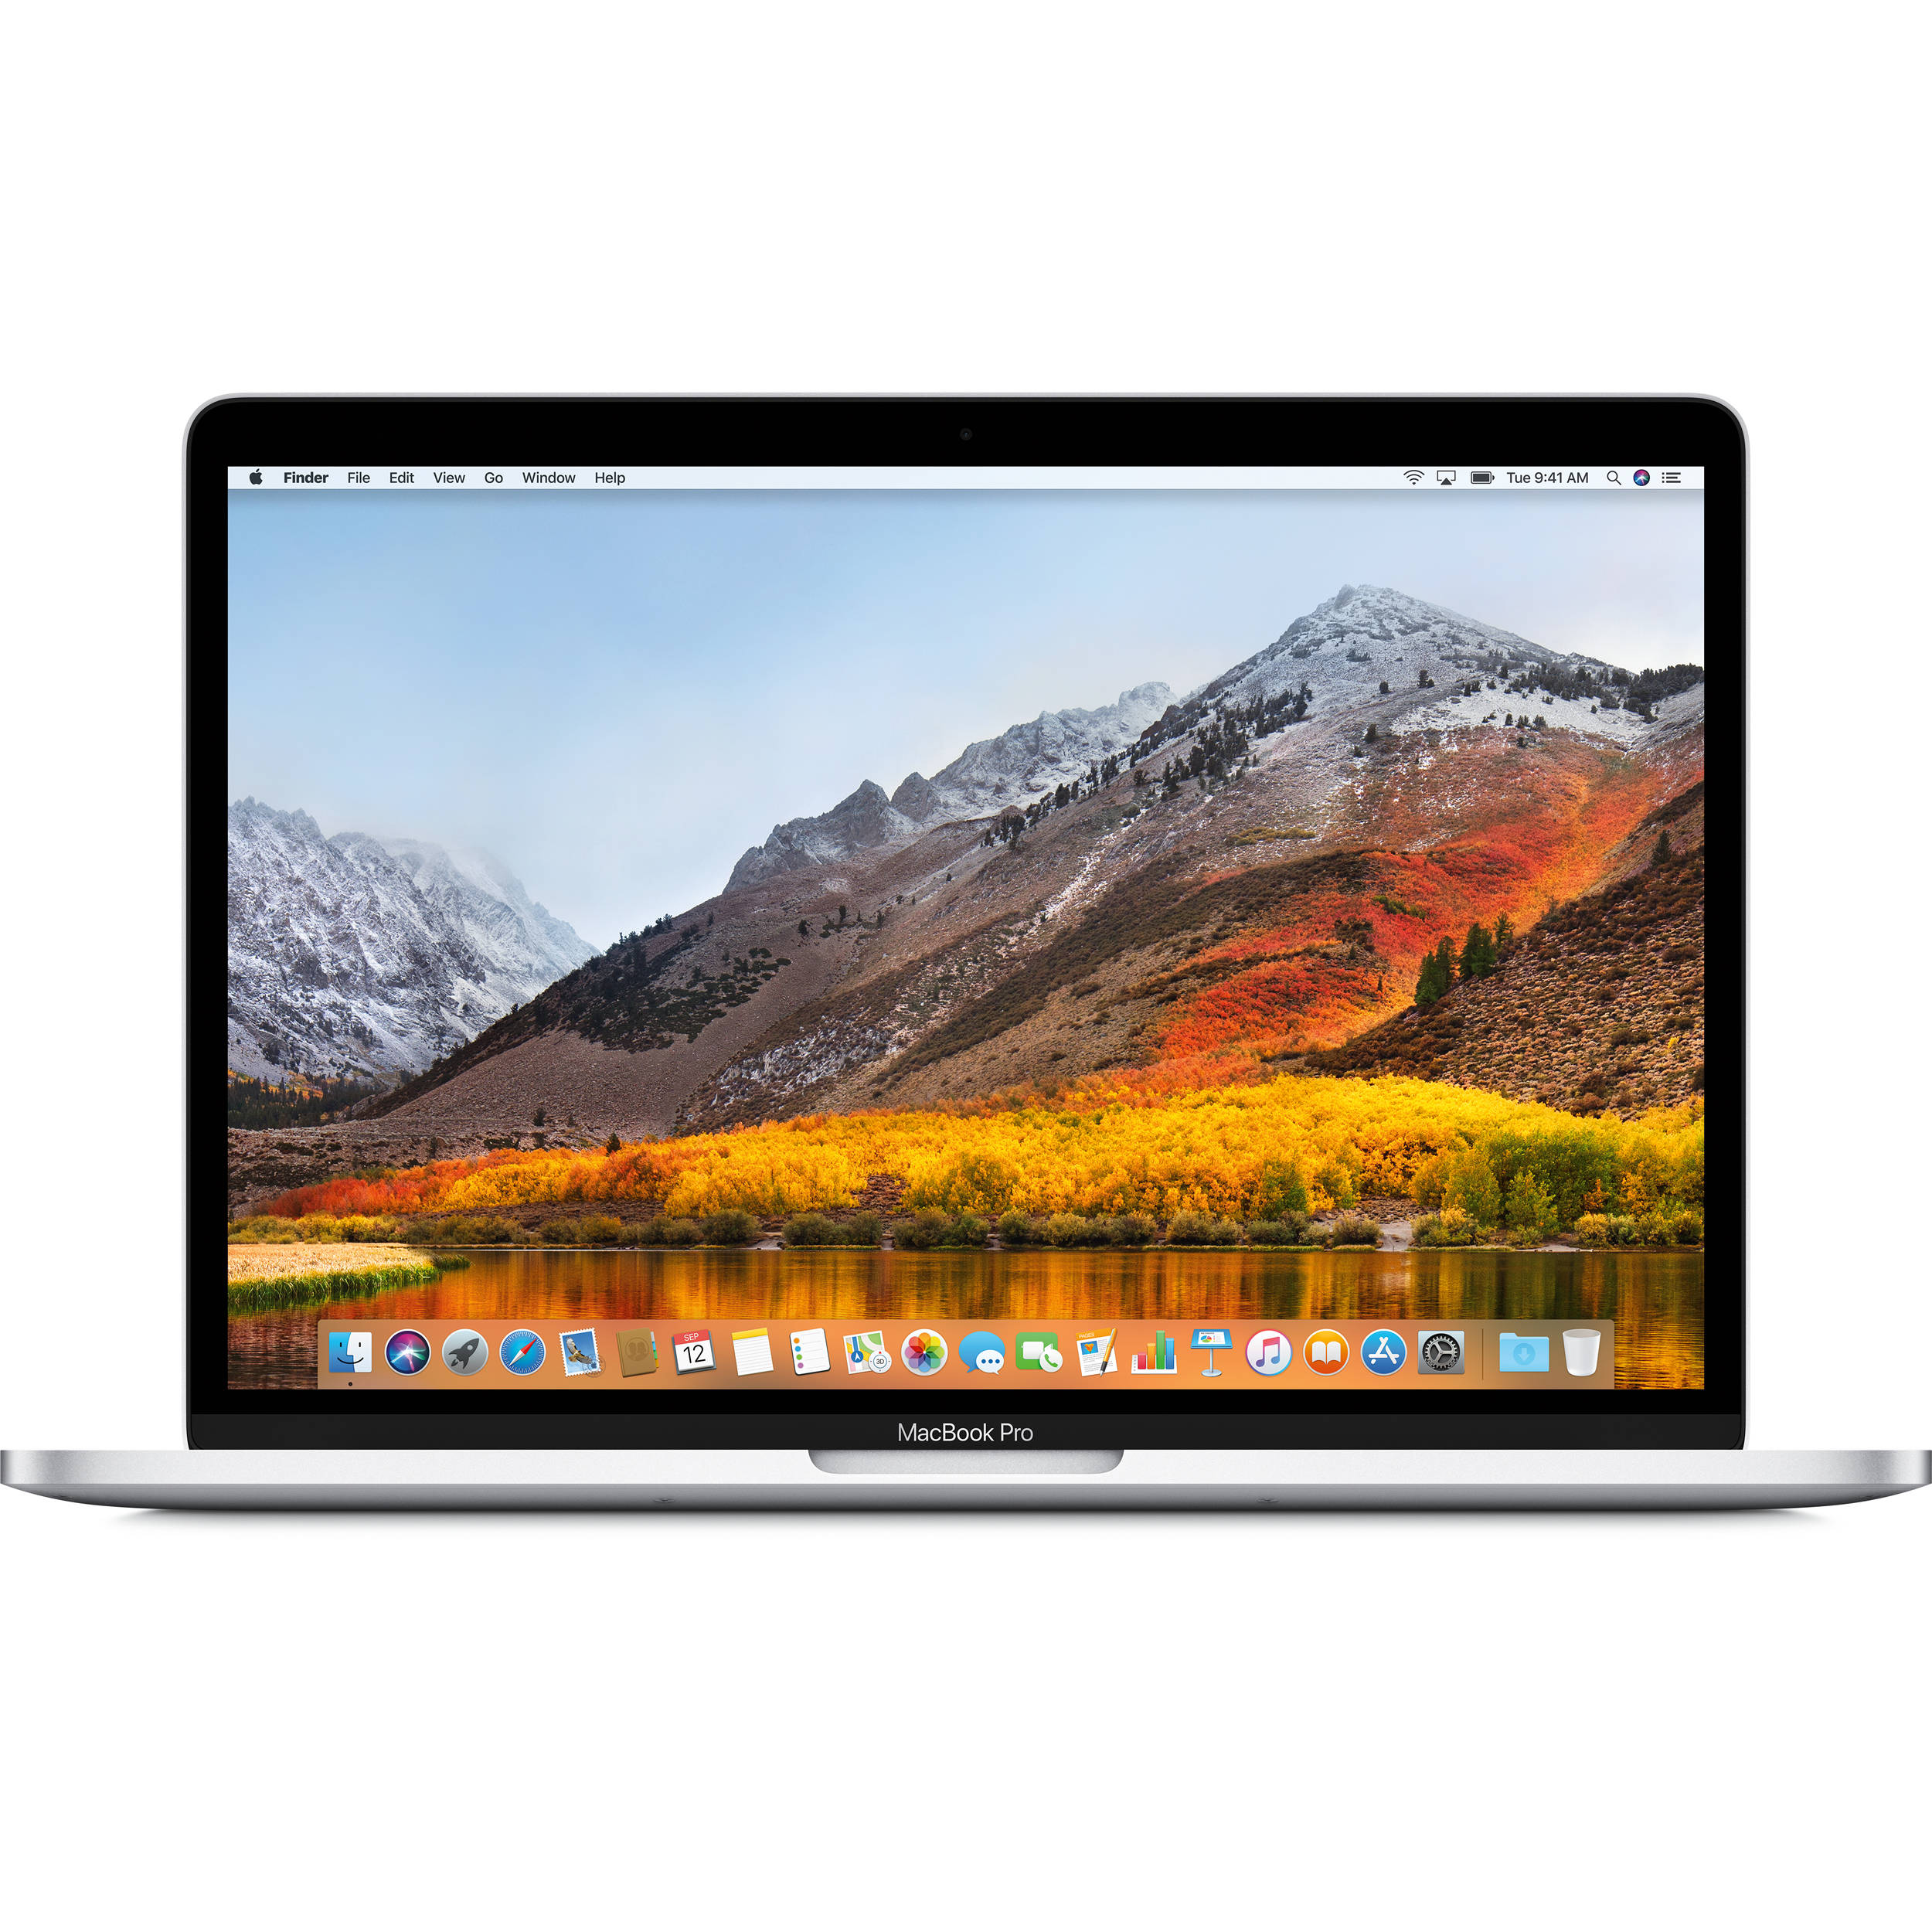 Apple 133 Macbook Pro Mid 2018 Silver Mr9u2ll A Bh Australia Silicon Chip Online House Wiring Looking At Light Switches